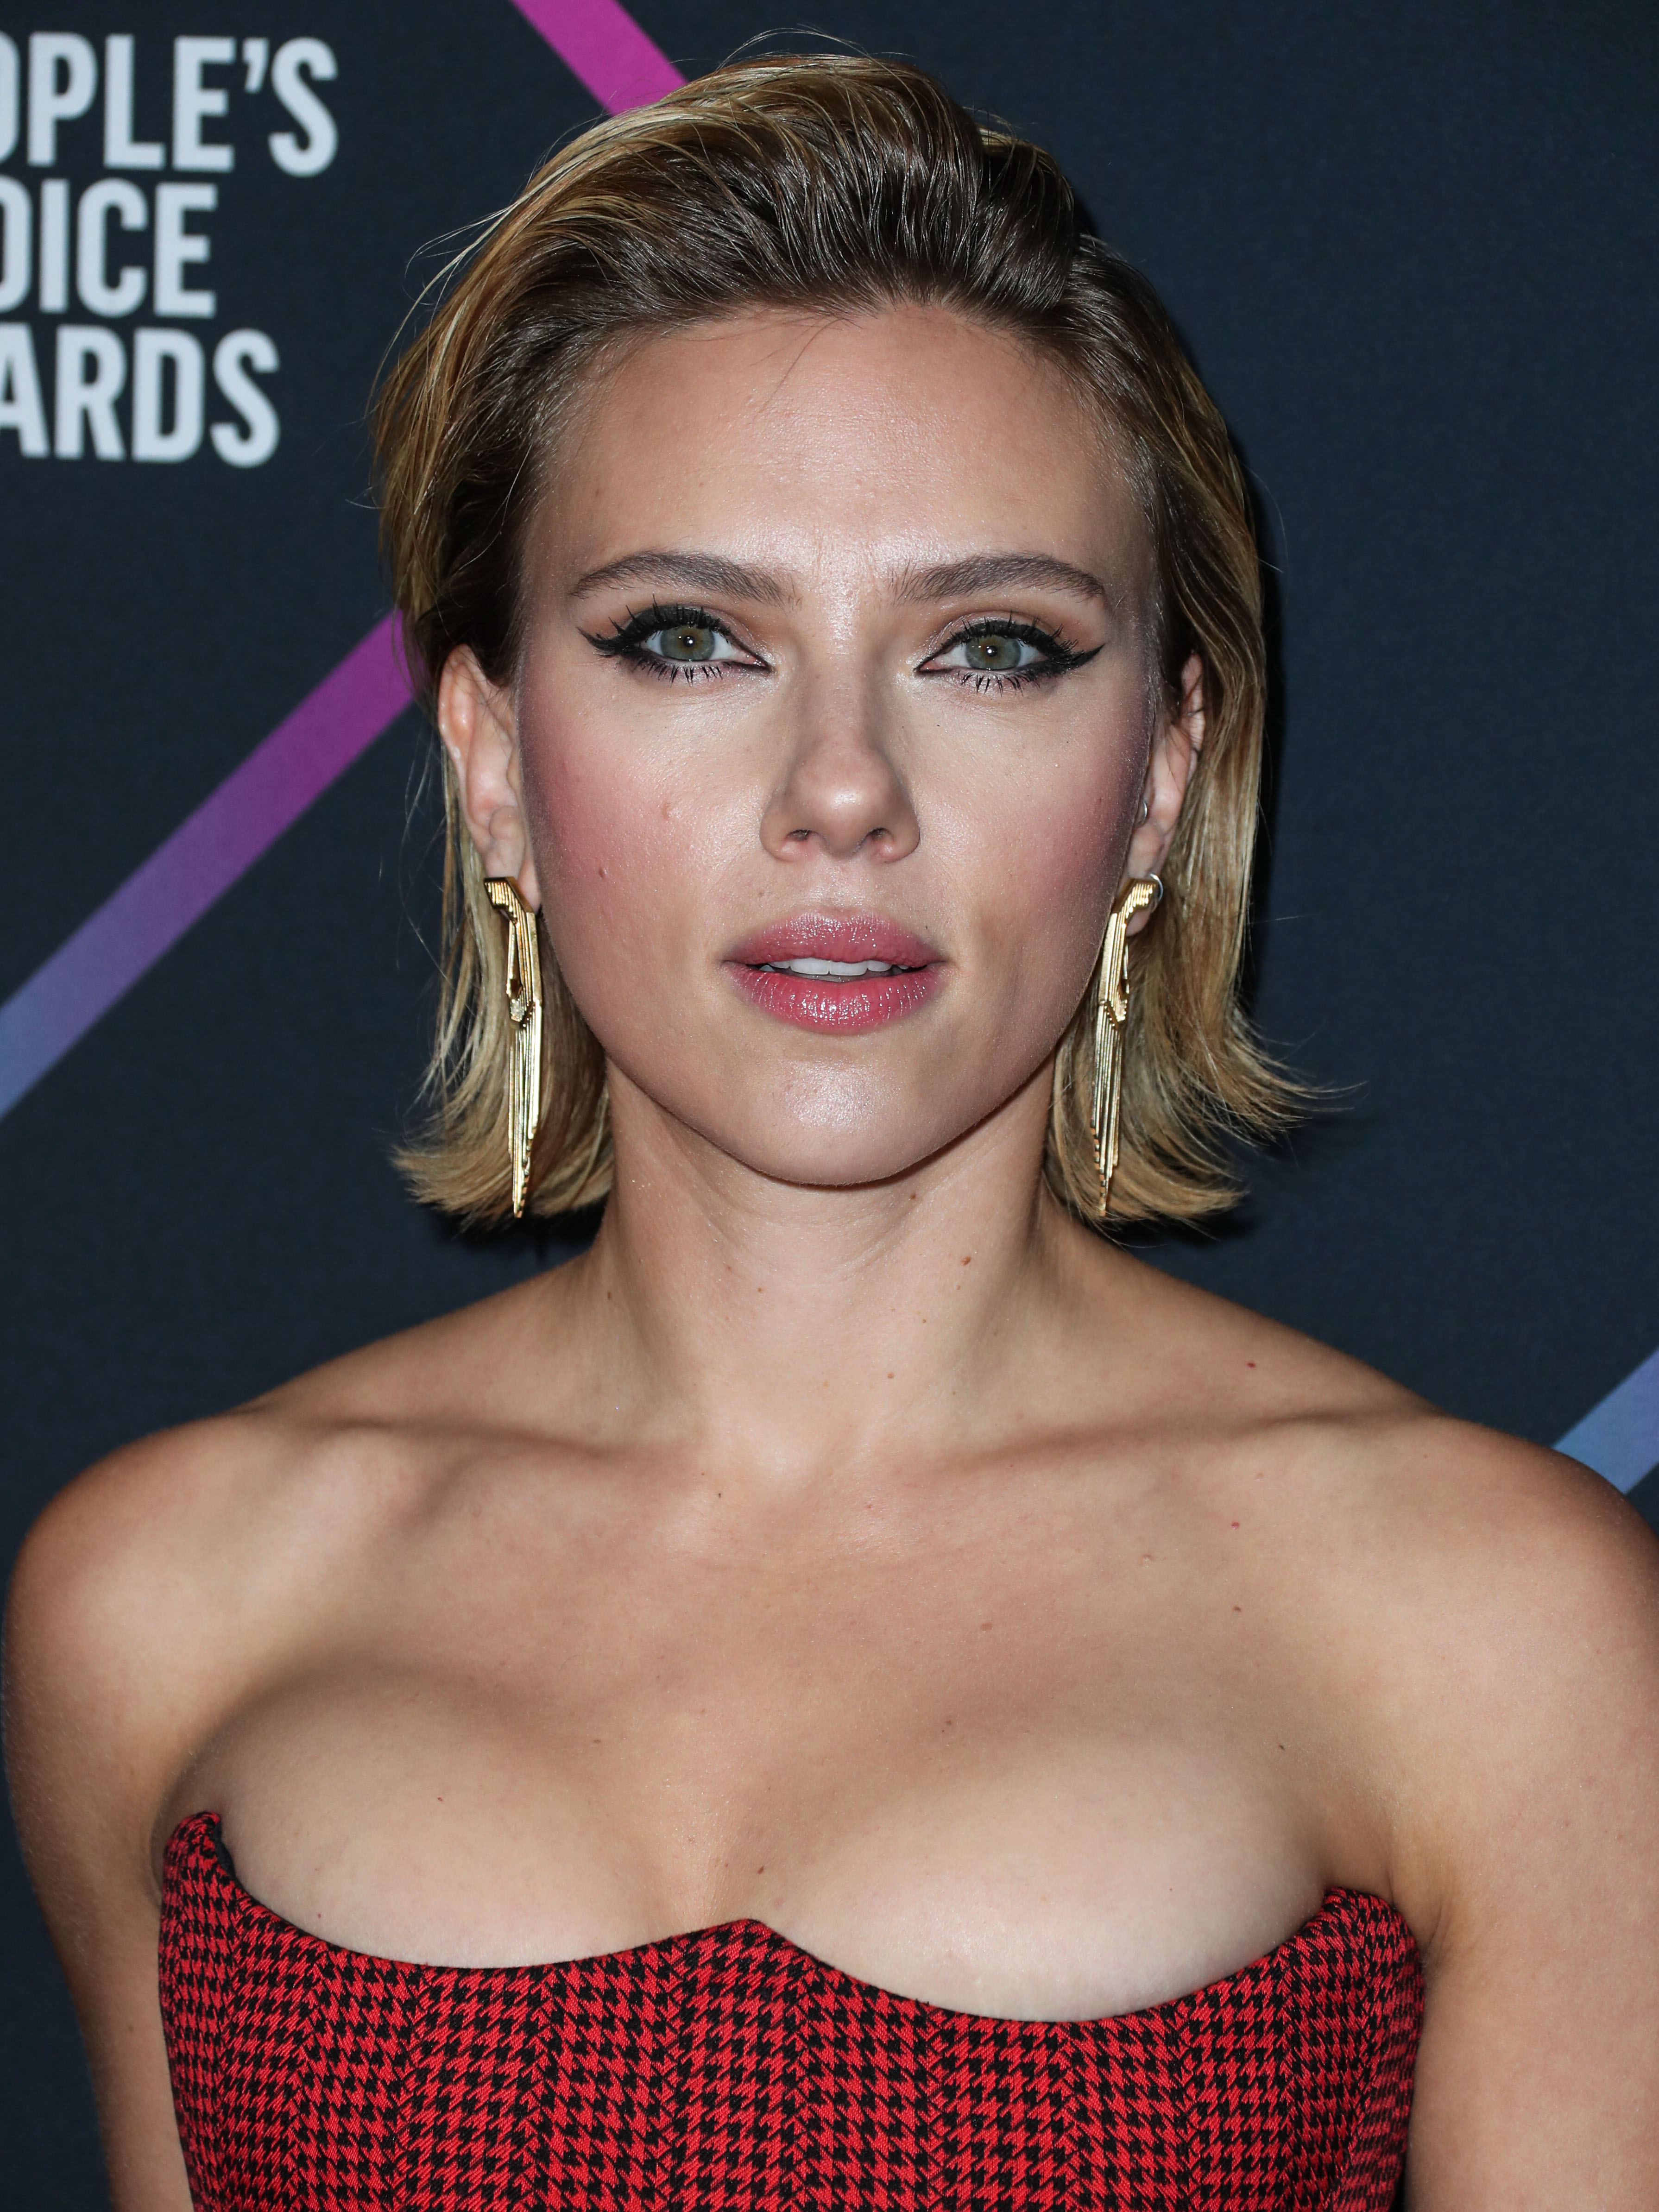 Scarlett Johansson Basically Just Flashed The Camera In A High-Slit Dress–Did She Forget Underwear?